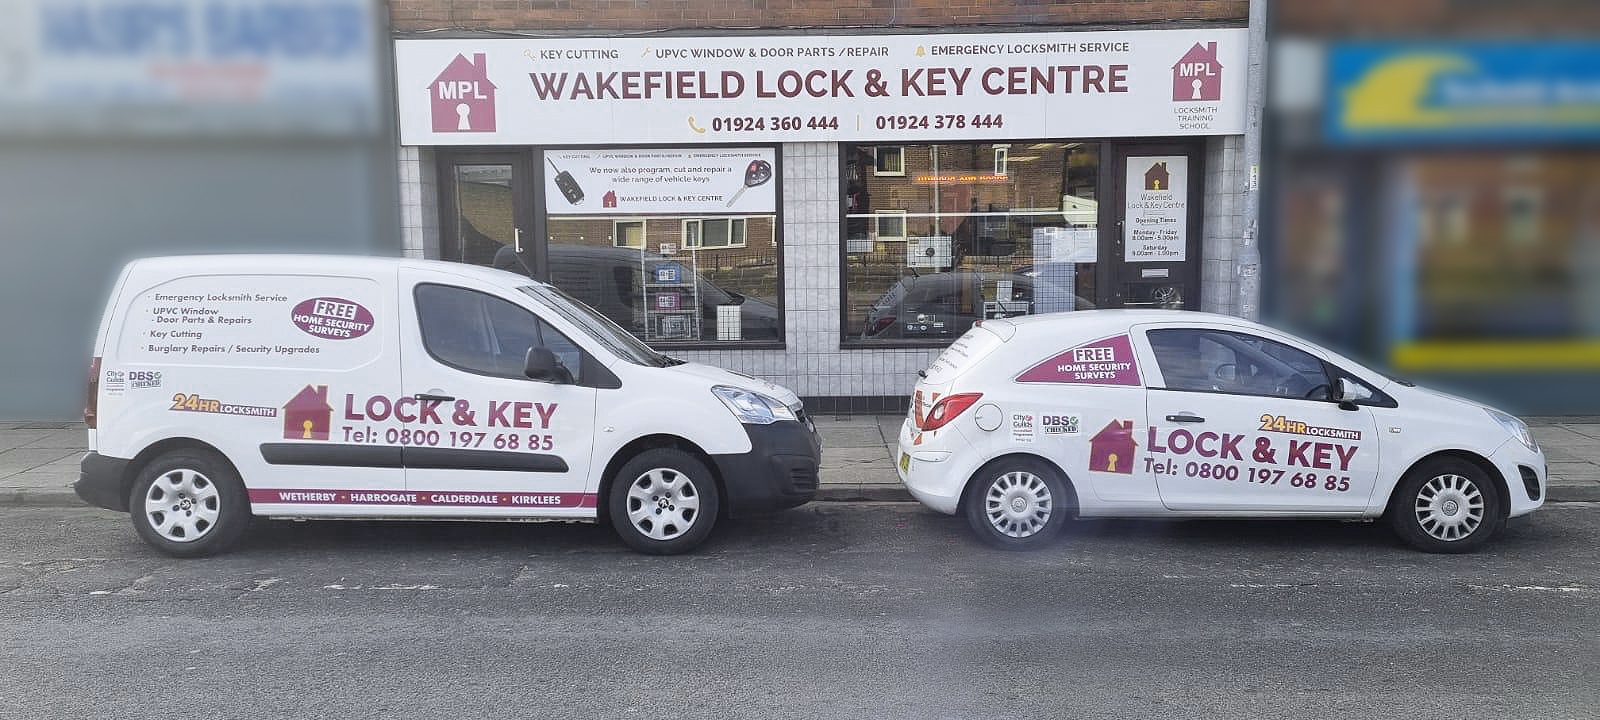 Welcome to Locksmith Tools featured image